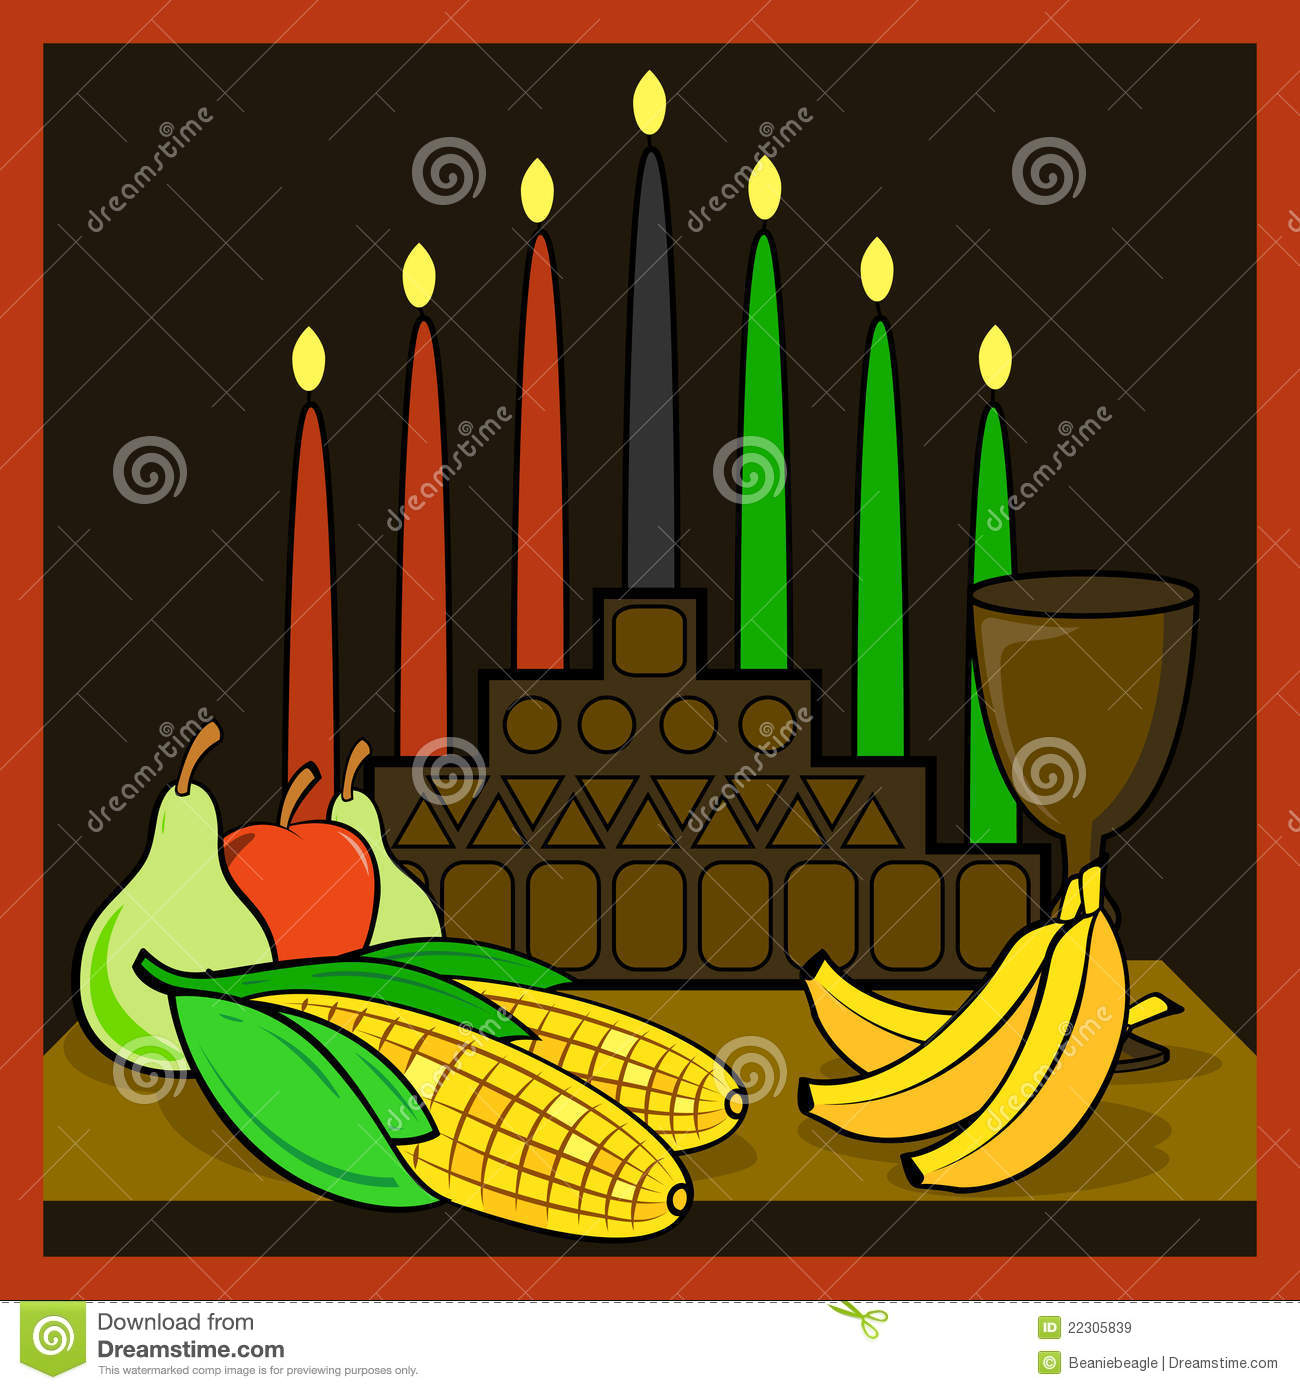 Kwanzaa Royalty Free Stock Images